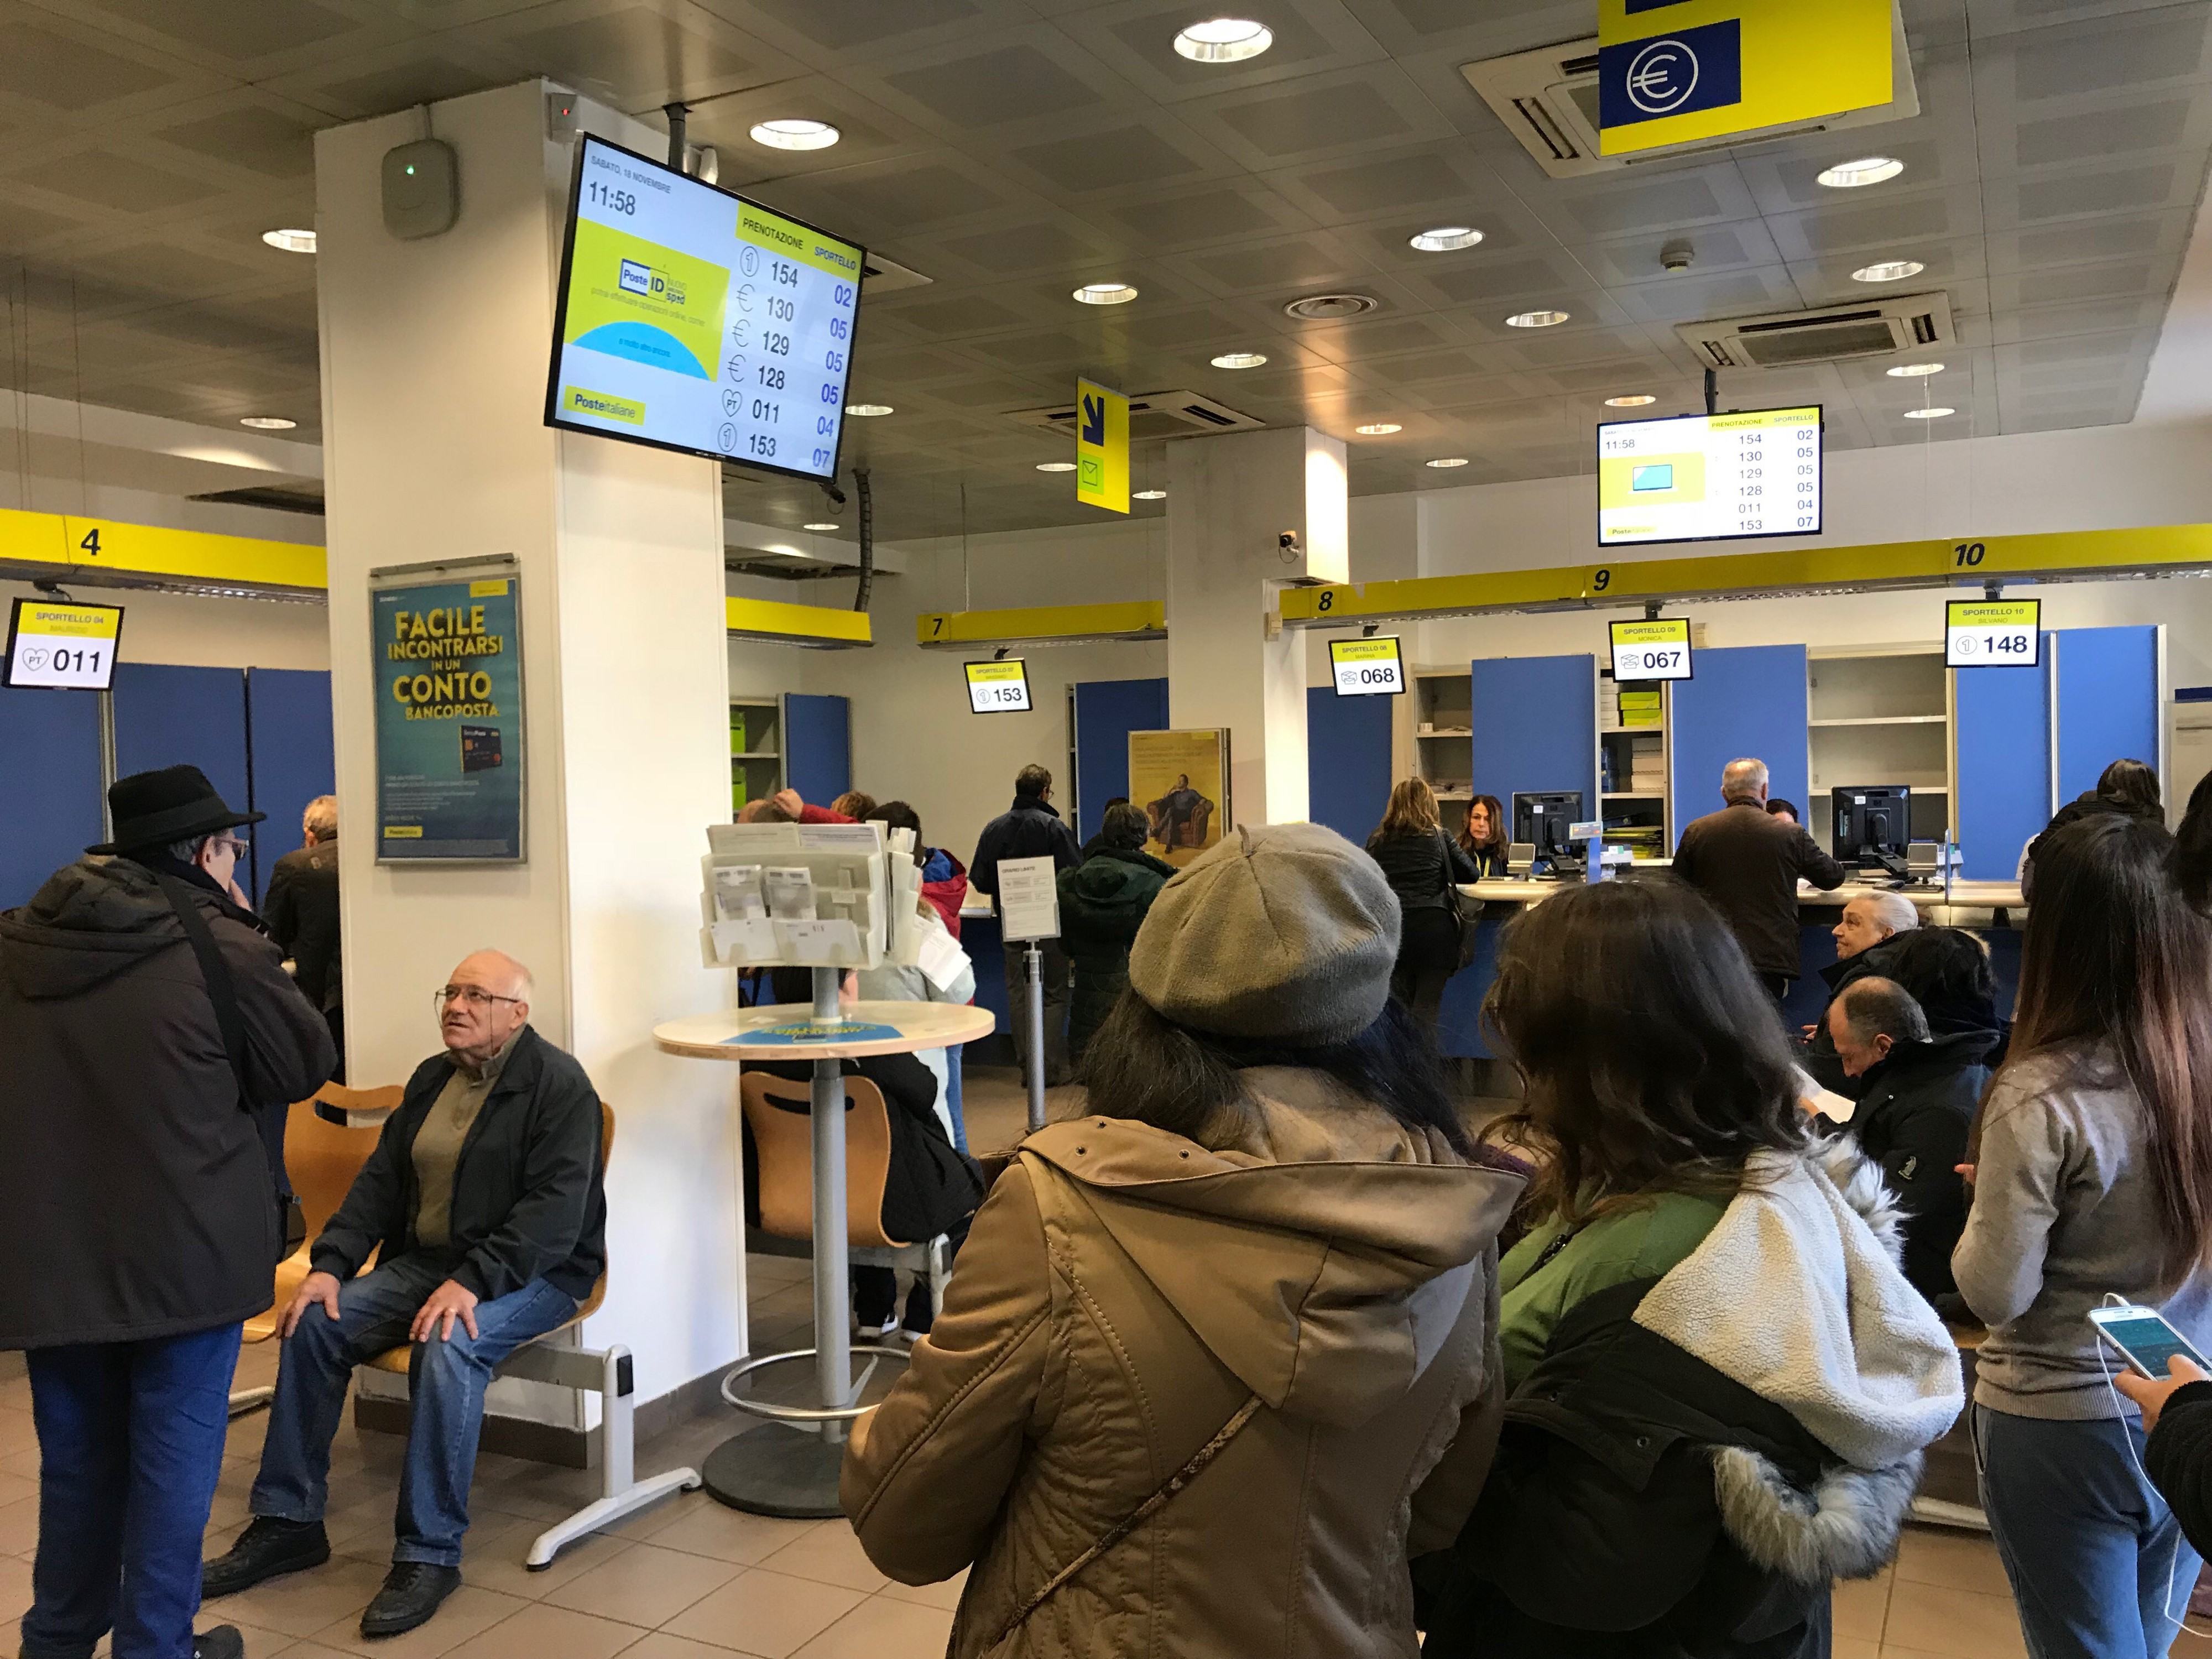 Scene of an Italian postoffice, complete with old folks and the waiting time contraption overhead